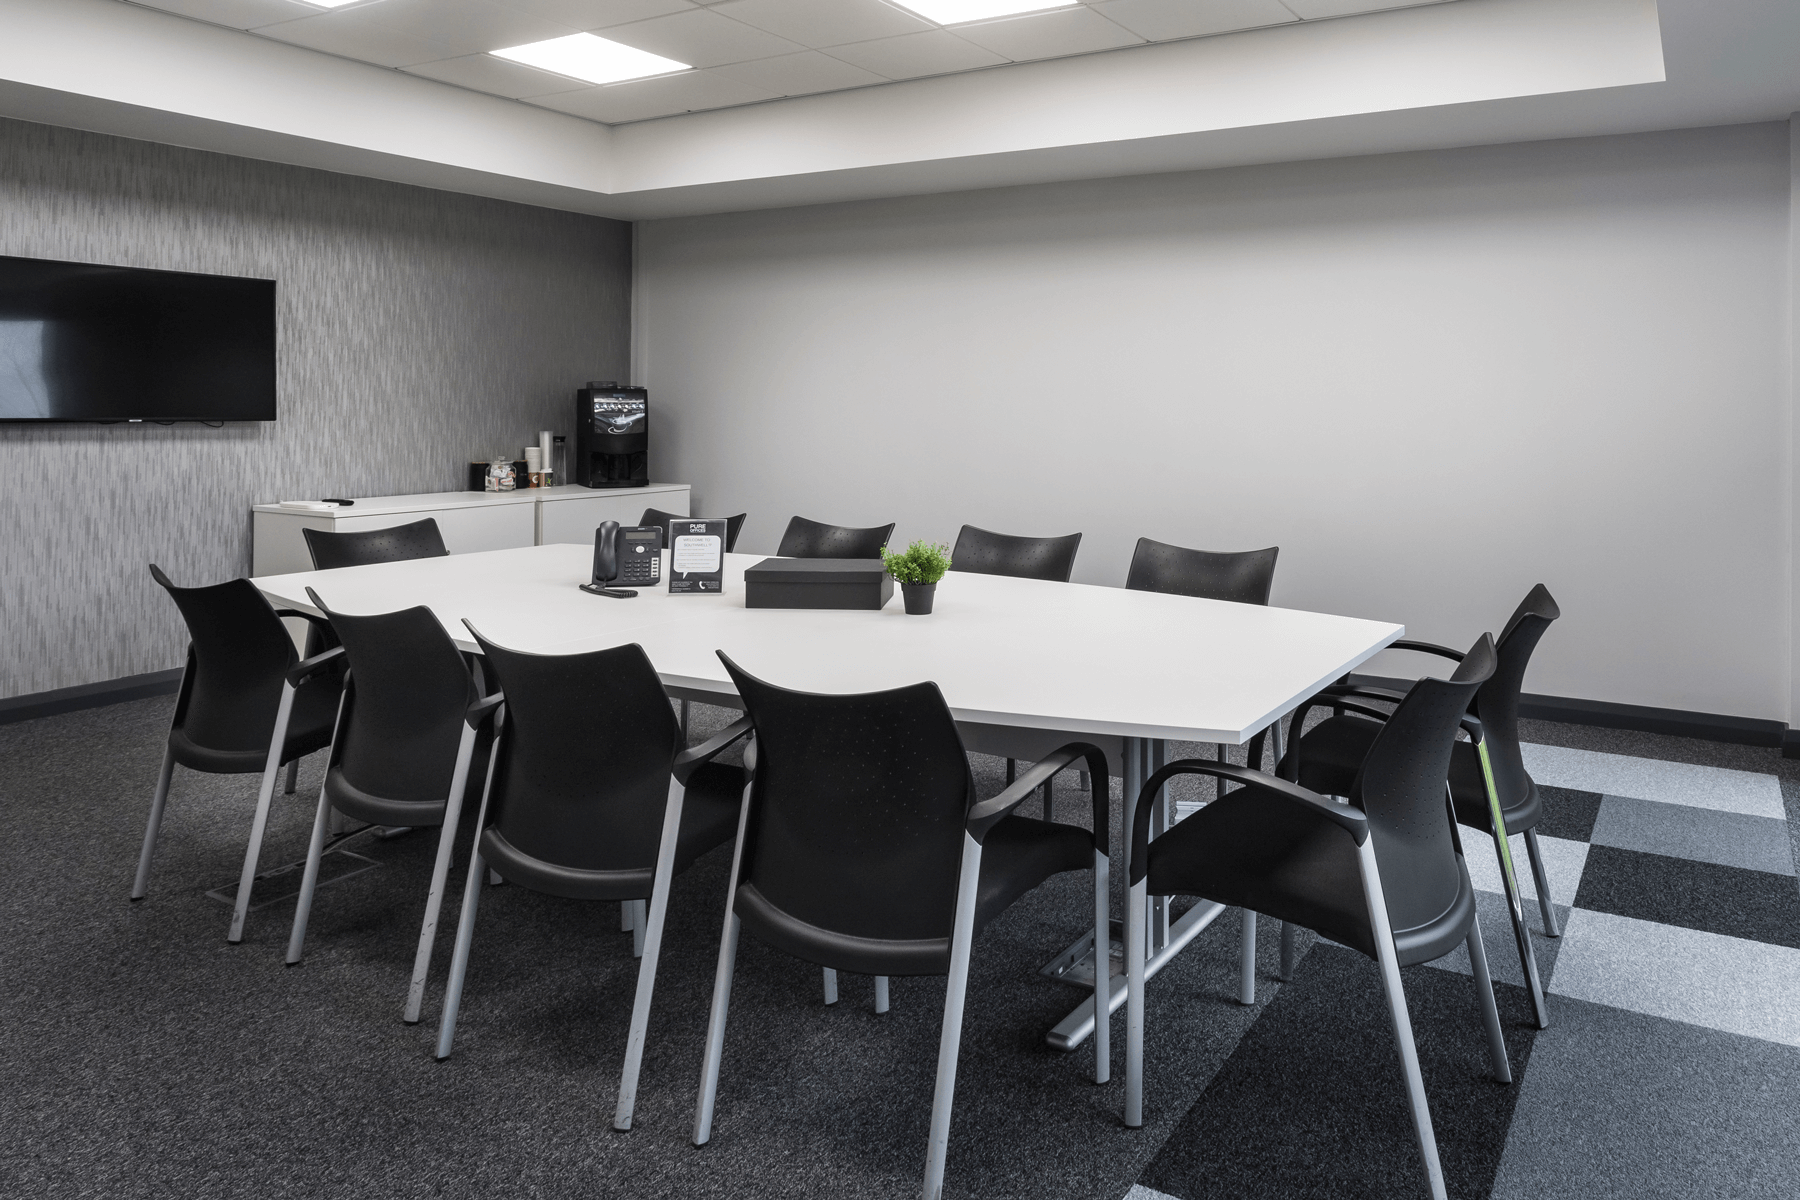 Meeting Room Venue Management Software